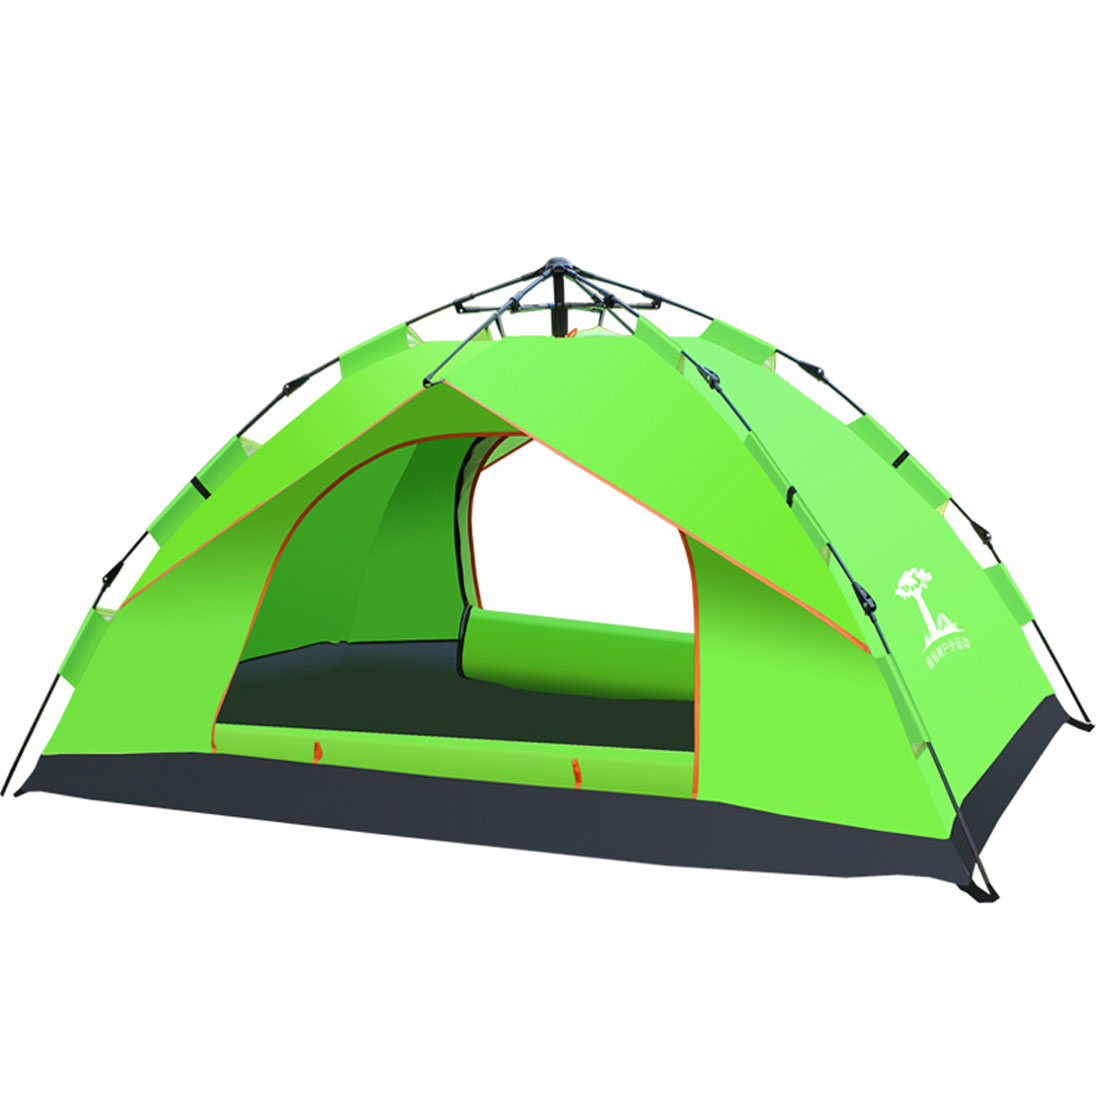 3-4 Person Automatic Easy Pitch Pop Up Portable C&ing Backpacking Dome Tent  sc 1 st  Walmart & 3-4 Person Automatic Easy Pitch Pop Up Portable Camping ...